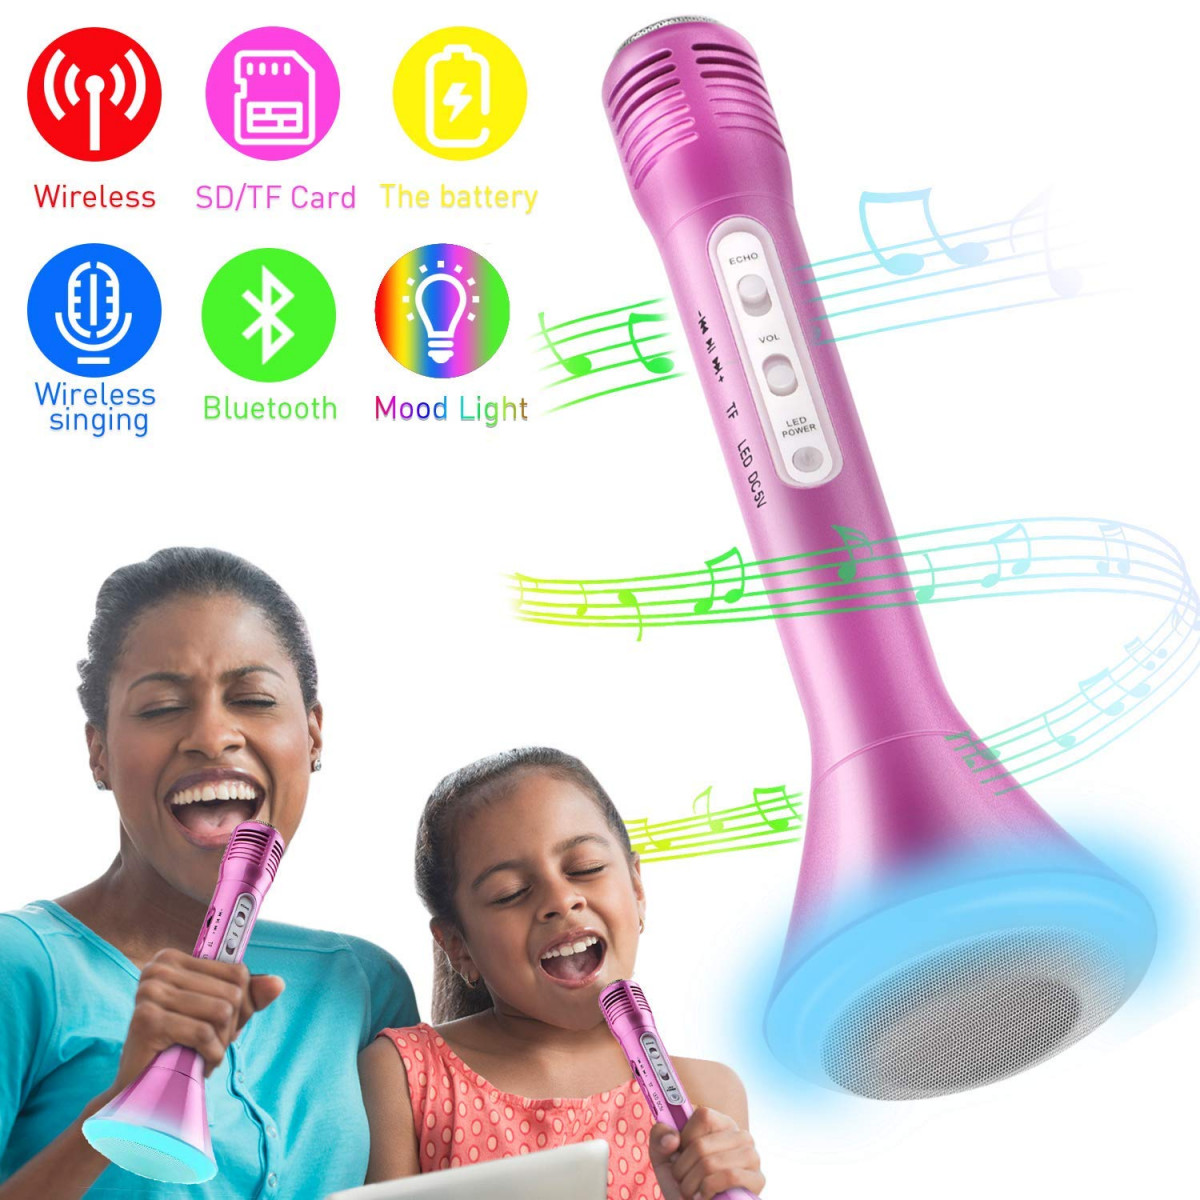 Speakers Portable Wireless Karaoke Microphone With Bluetooth Speaker Ktv Party Home Singing Musical Toy For Children Best Gift For Kids